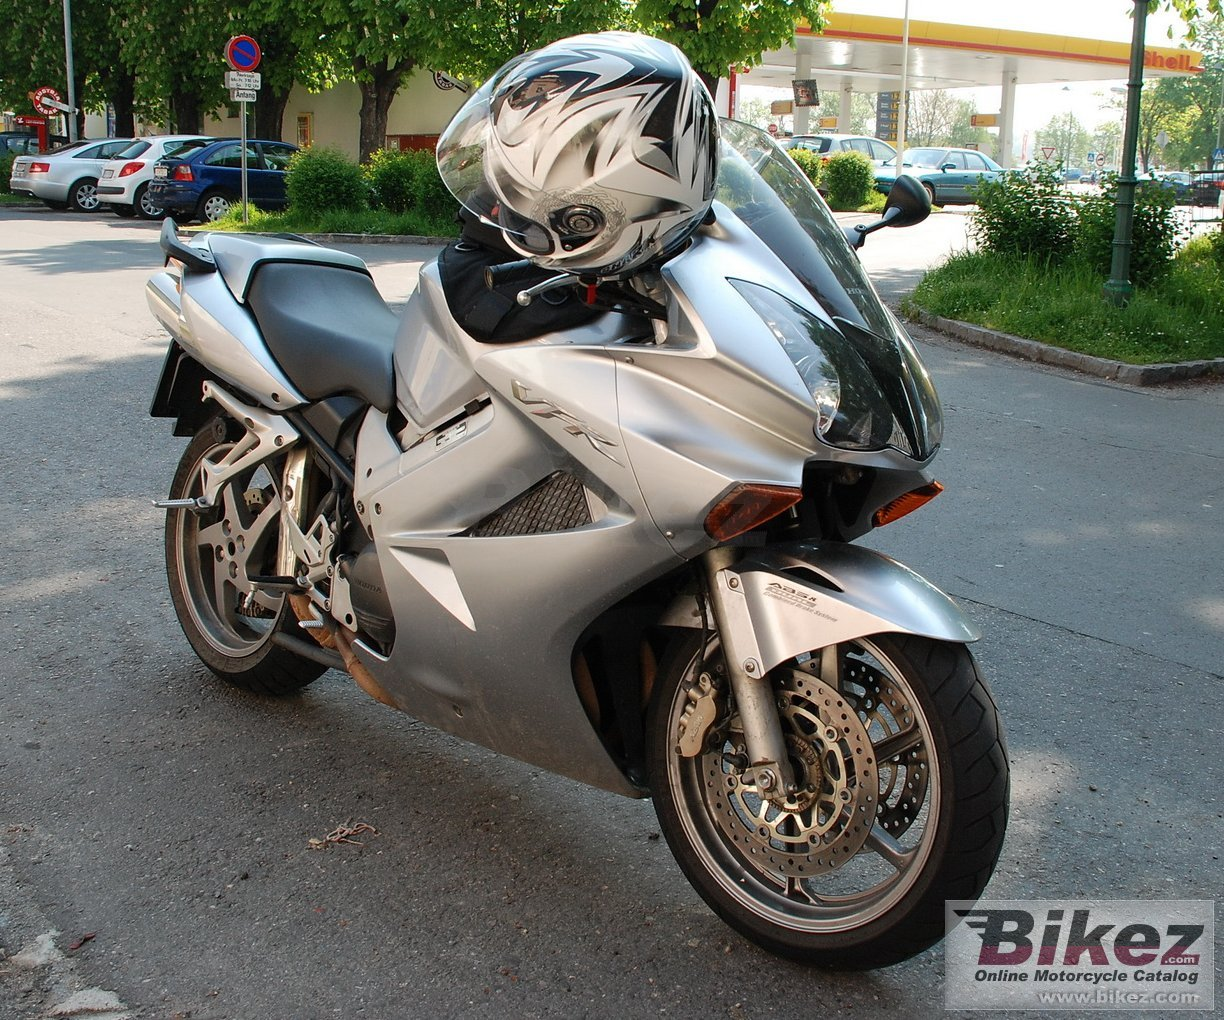 Honda VFR 800 FI Interceptor ABS